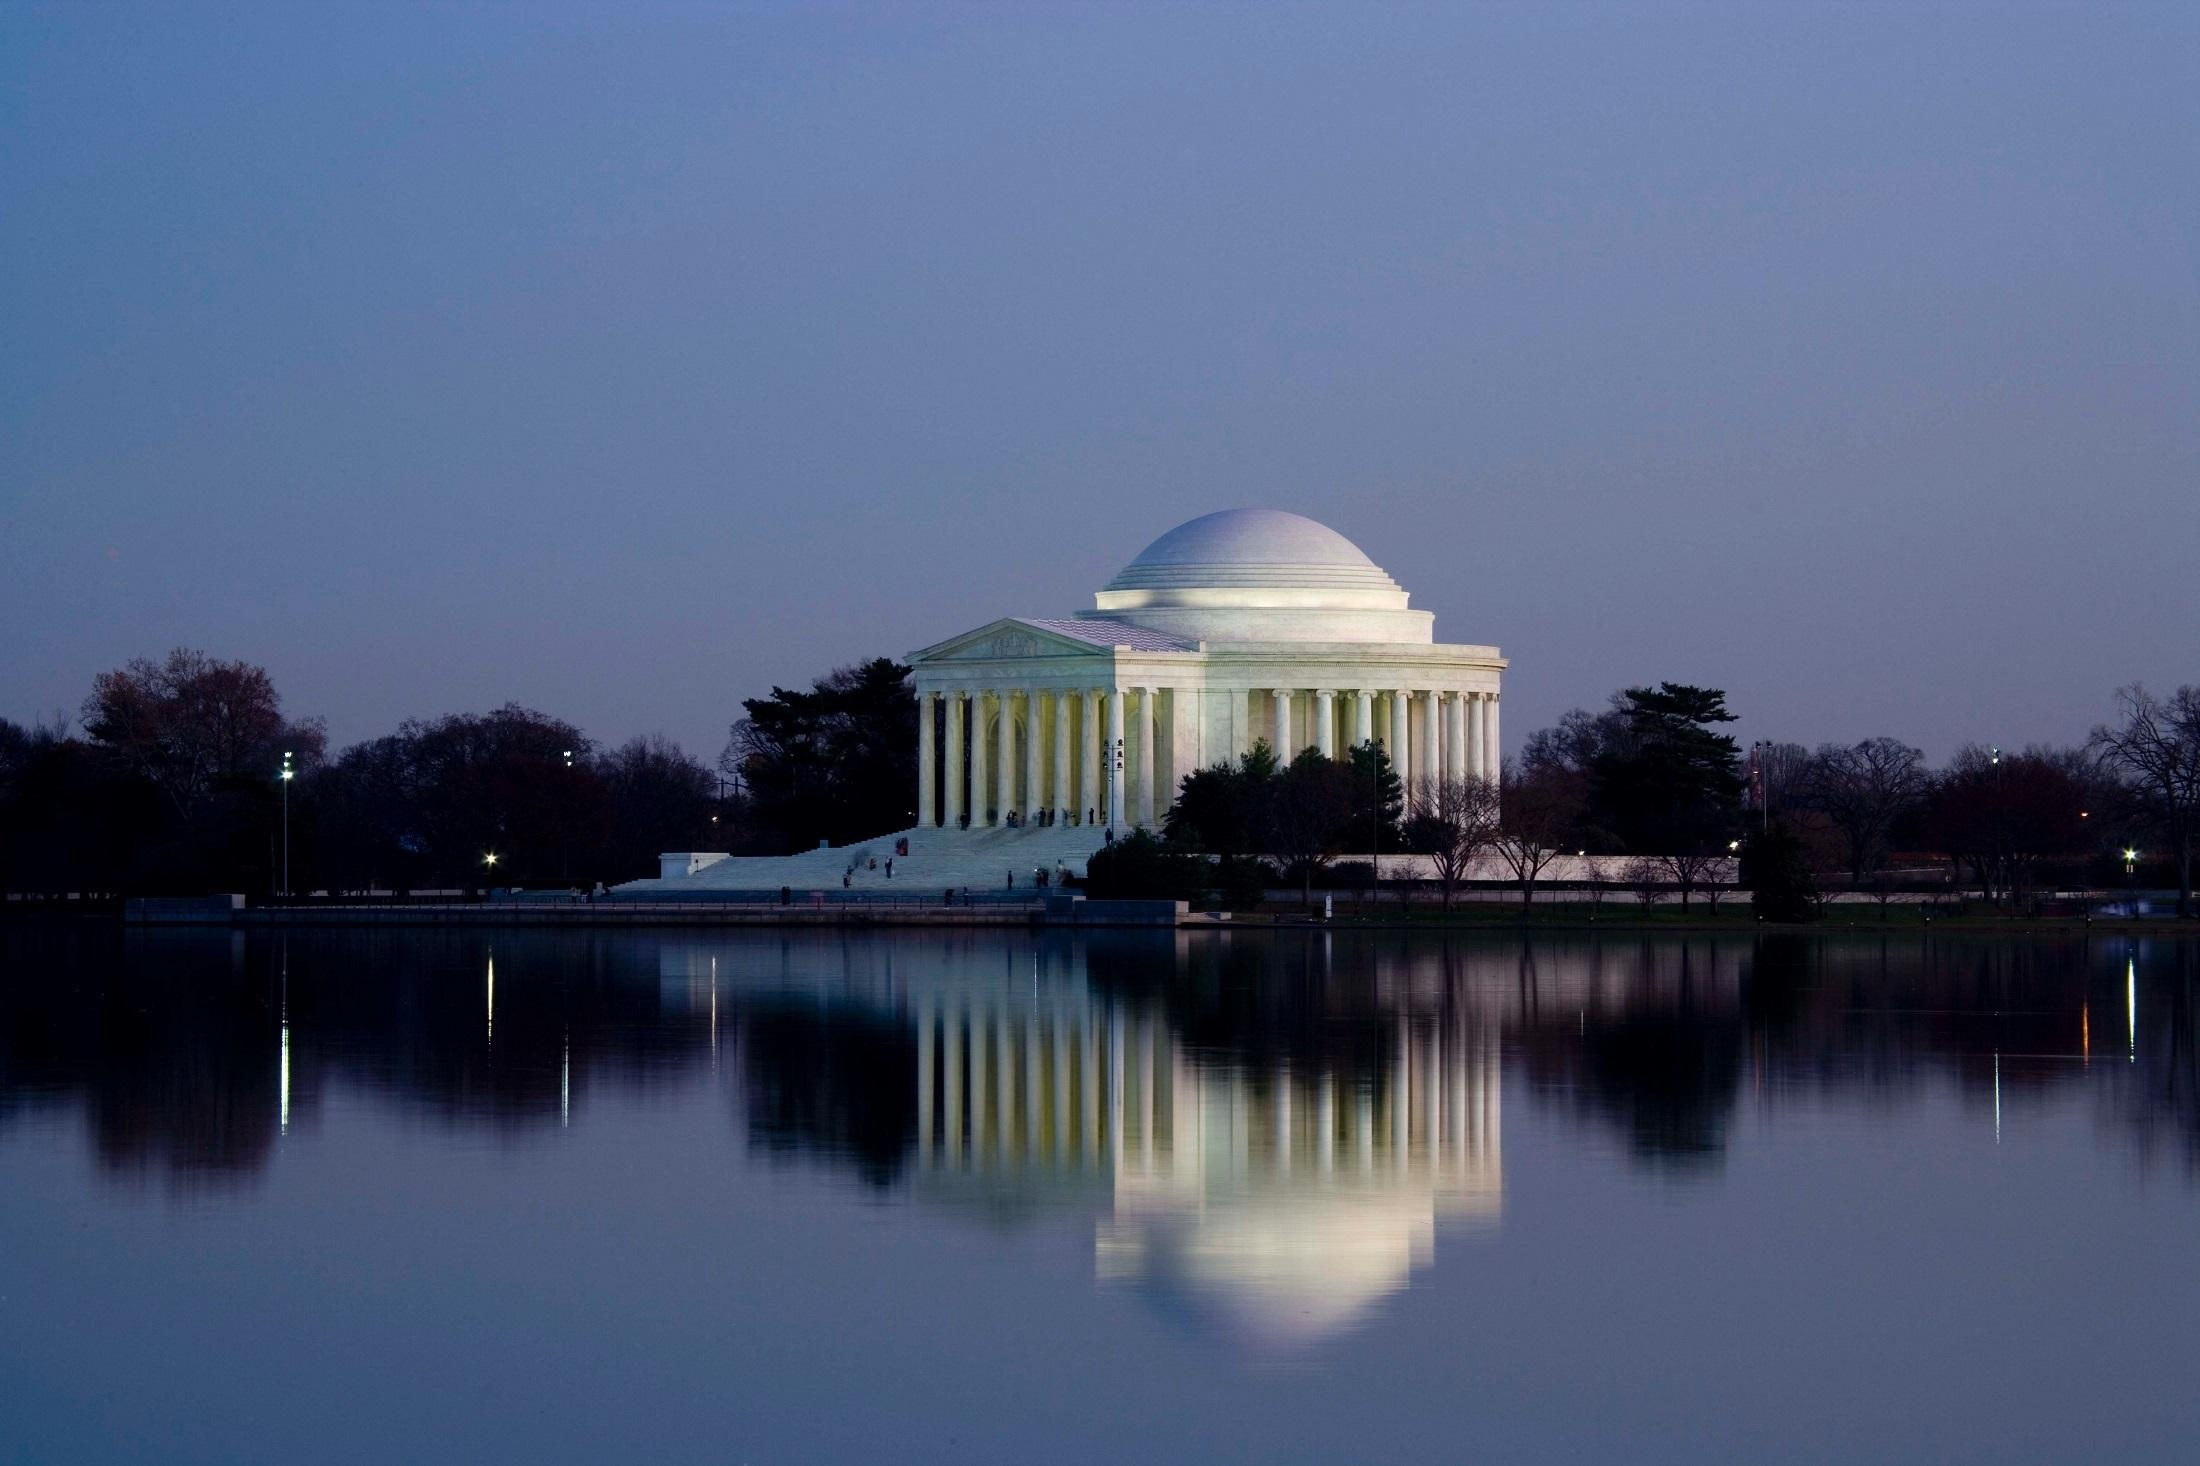 Thomas Jefferson Memorial in Washington, D.C. HD Wallpapers